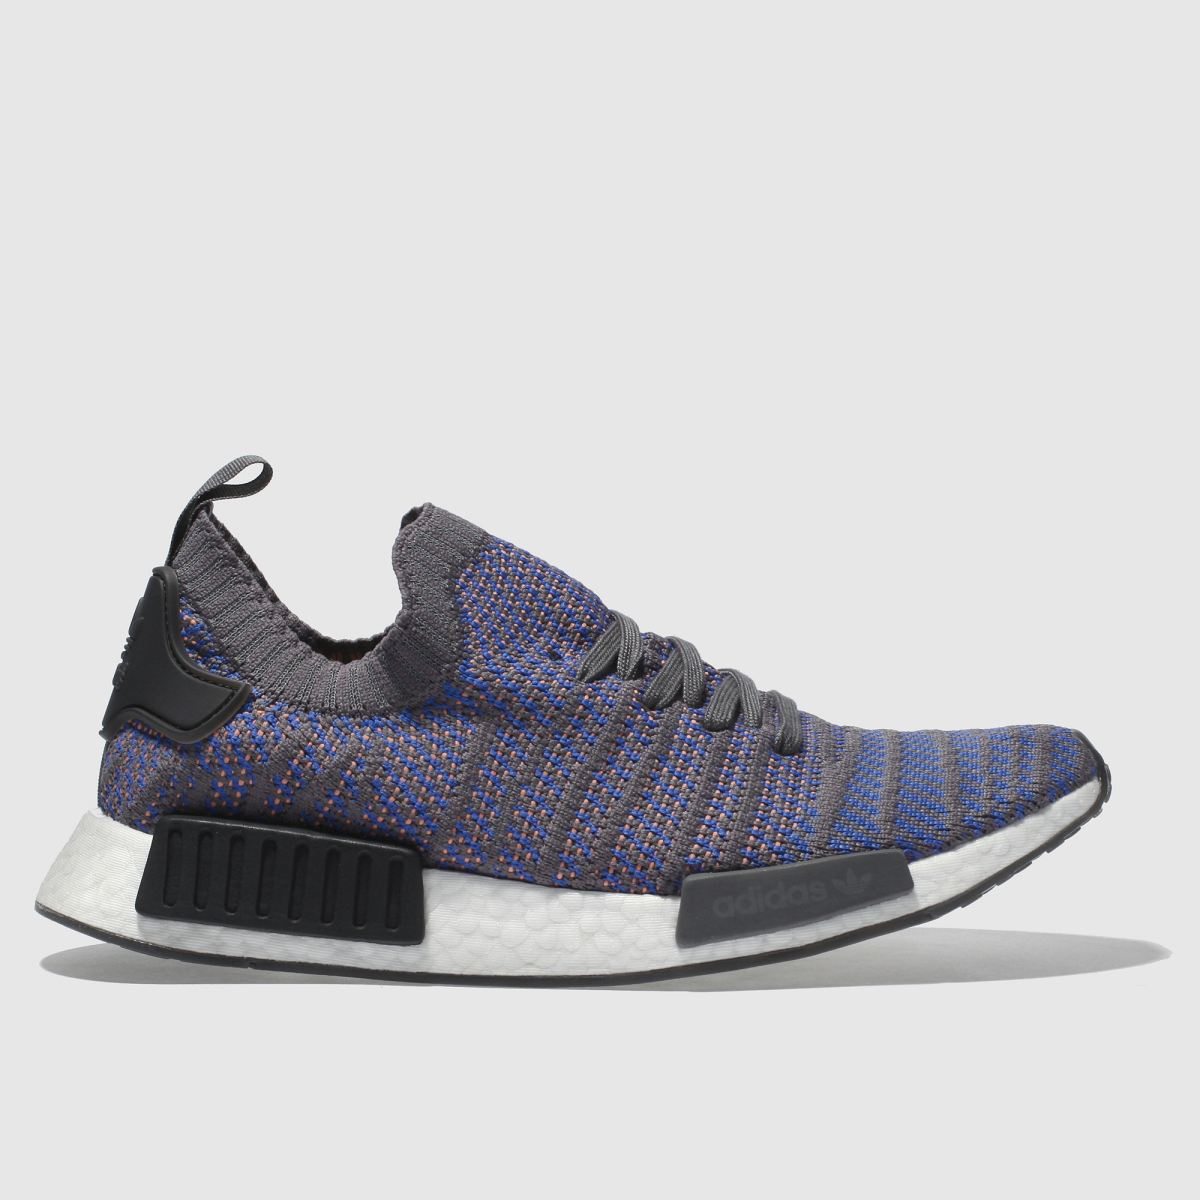 Adidas Blue Nmd_r1 Stlt Prime Knit Trainers